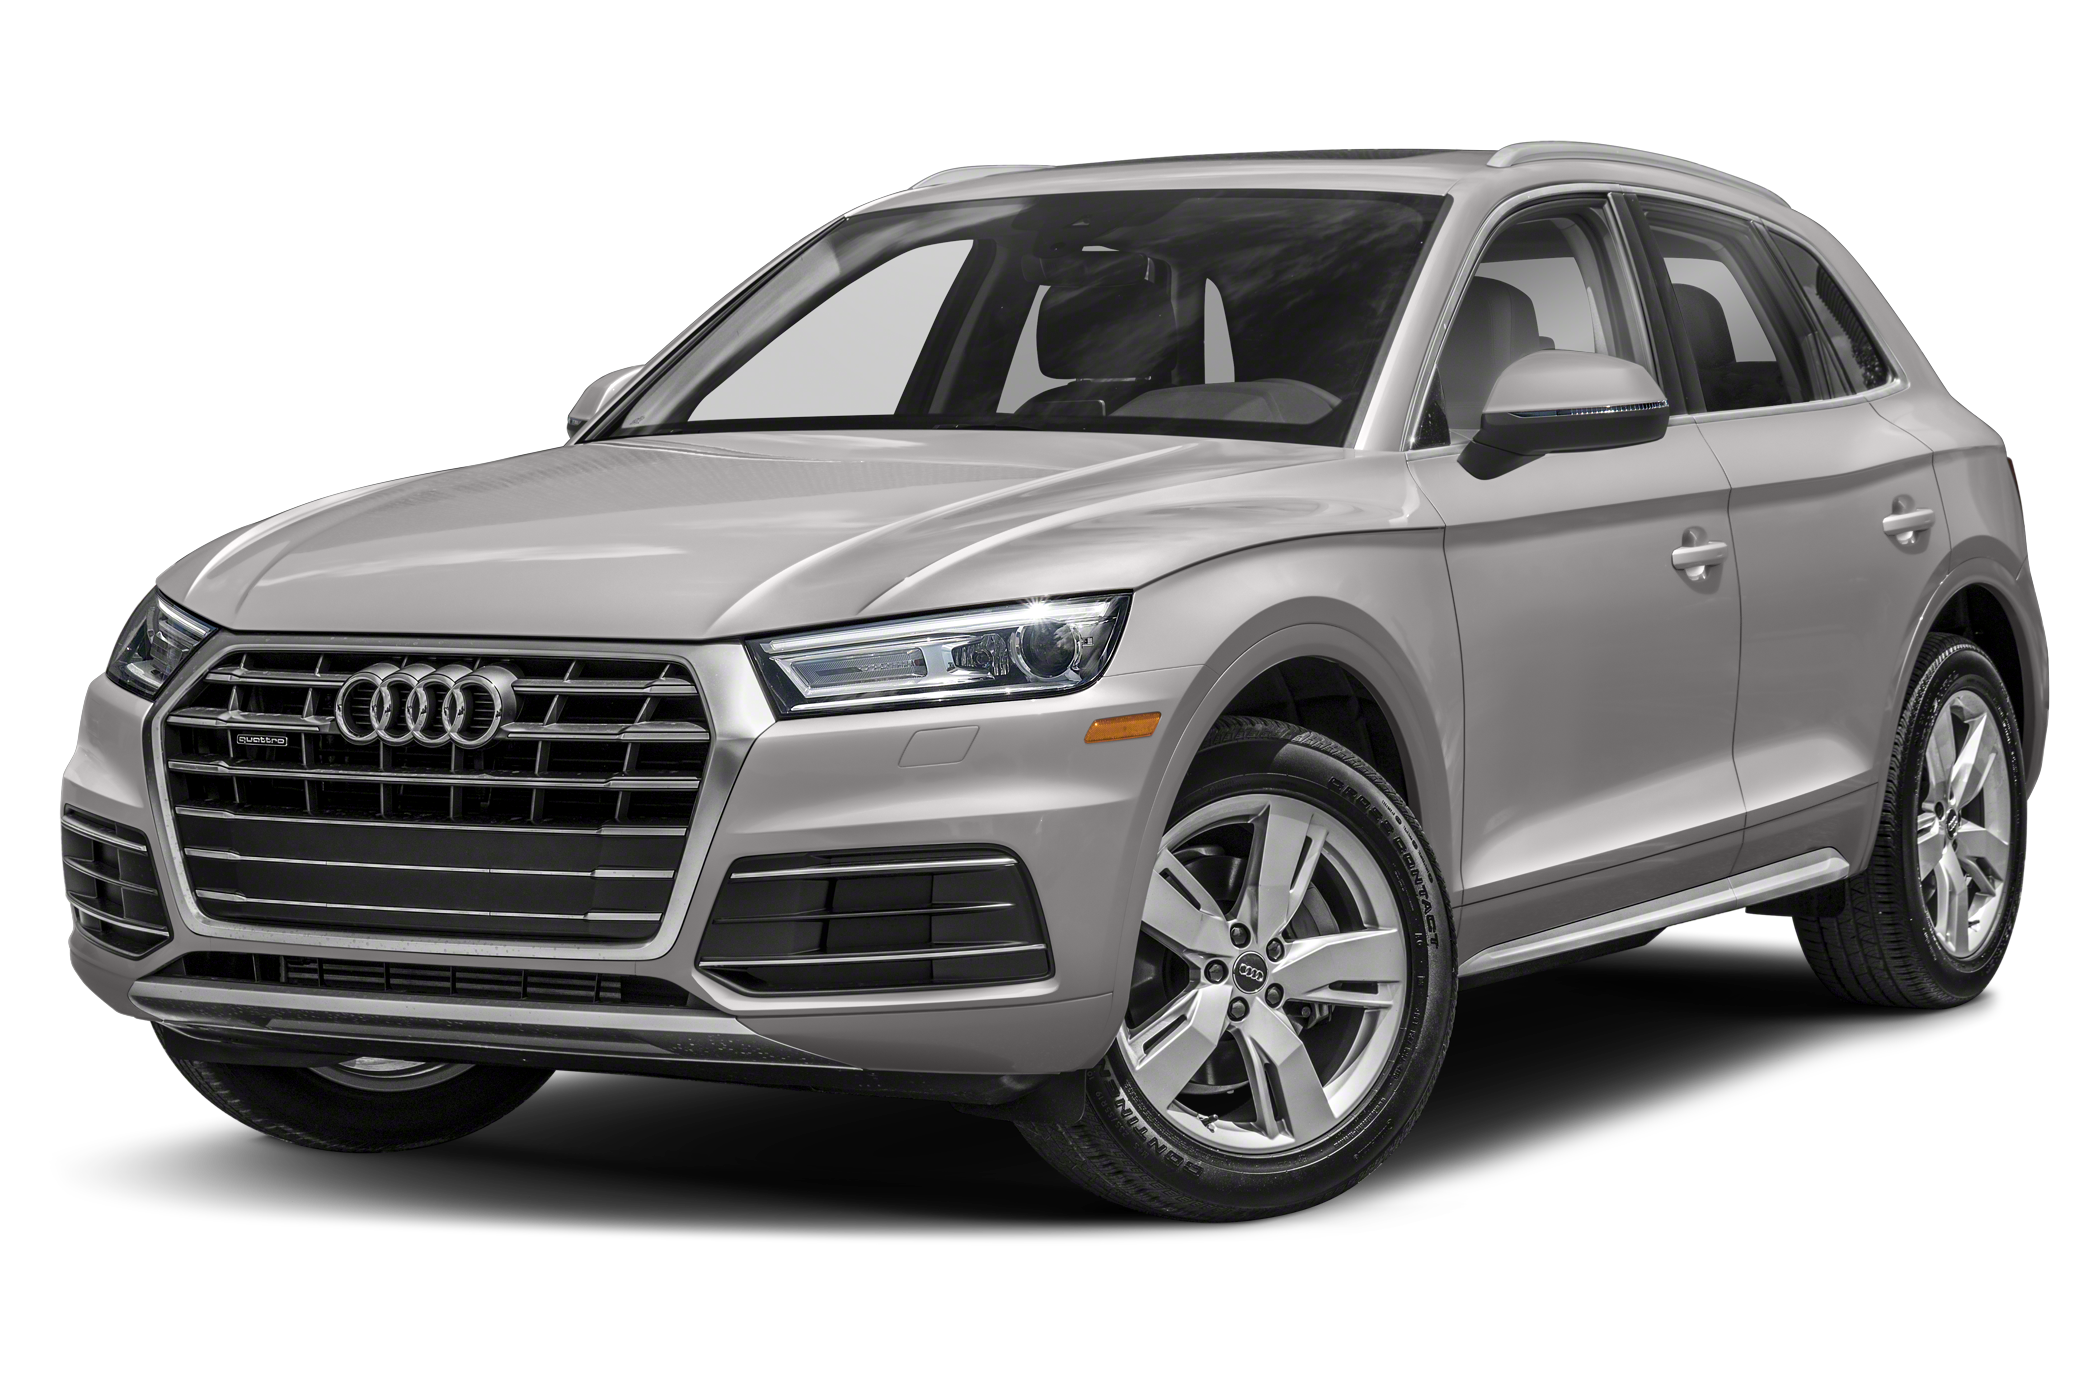 pare Audi Q5 to Mercedes benz Glc300